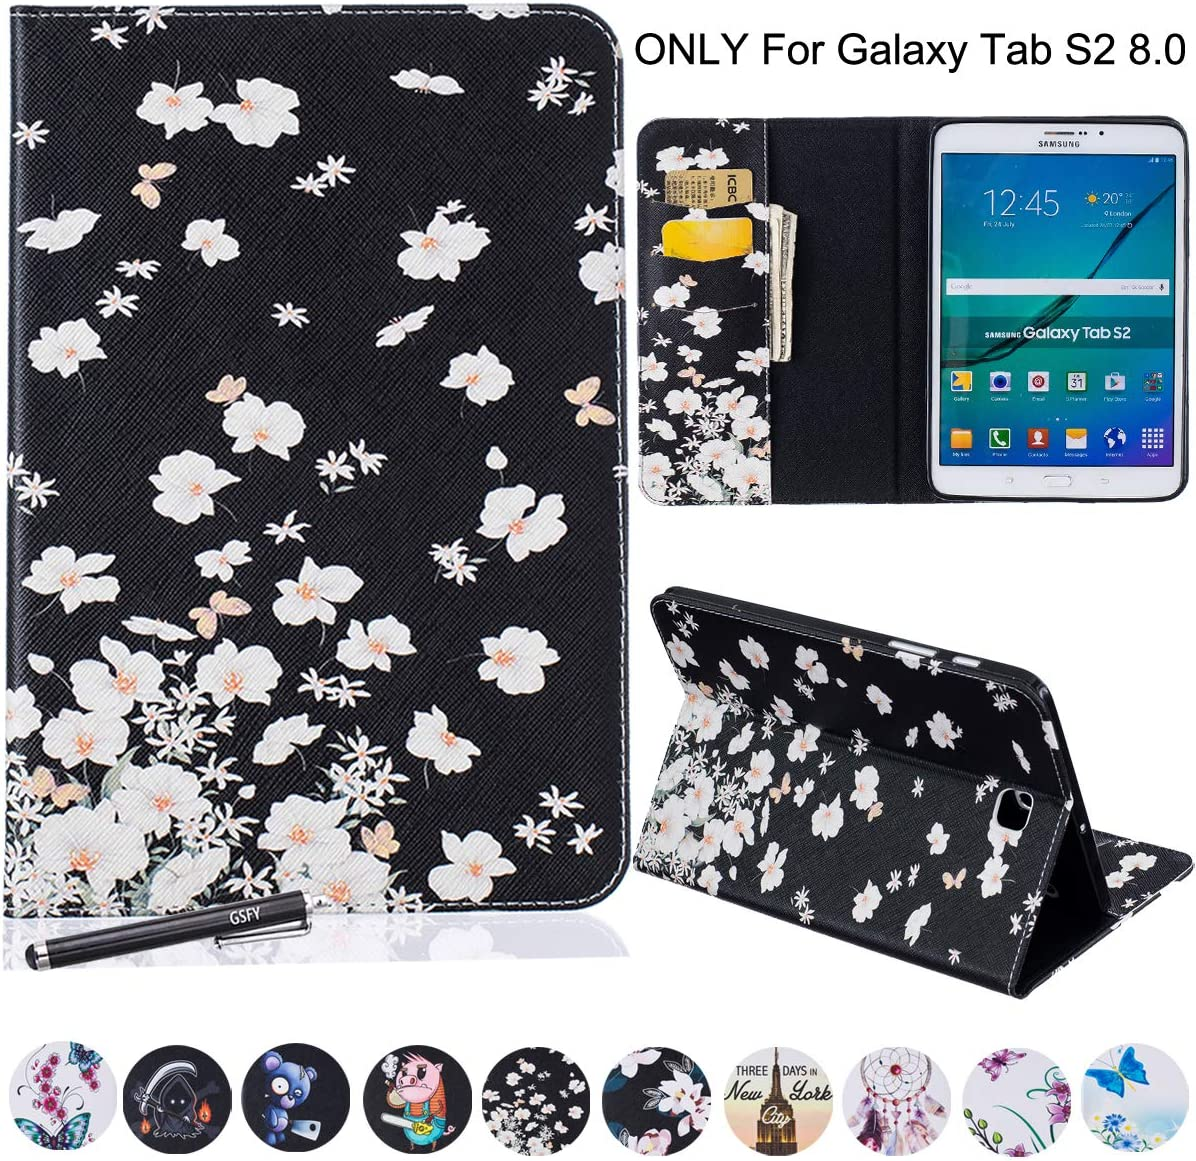 Samsung Galaxy Tab S2 8.0 Case - Newshine PU Leather Stand Folio Case Cover with Card Slots, Note Holder for Samsung Galaxy Tab S2 Tablet (8.0 Inch, SM-T710 T715) - Jasmine